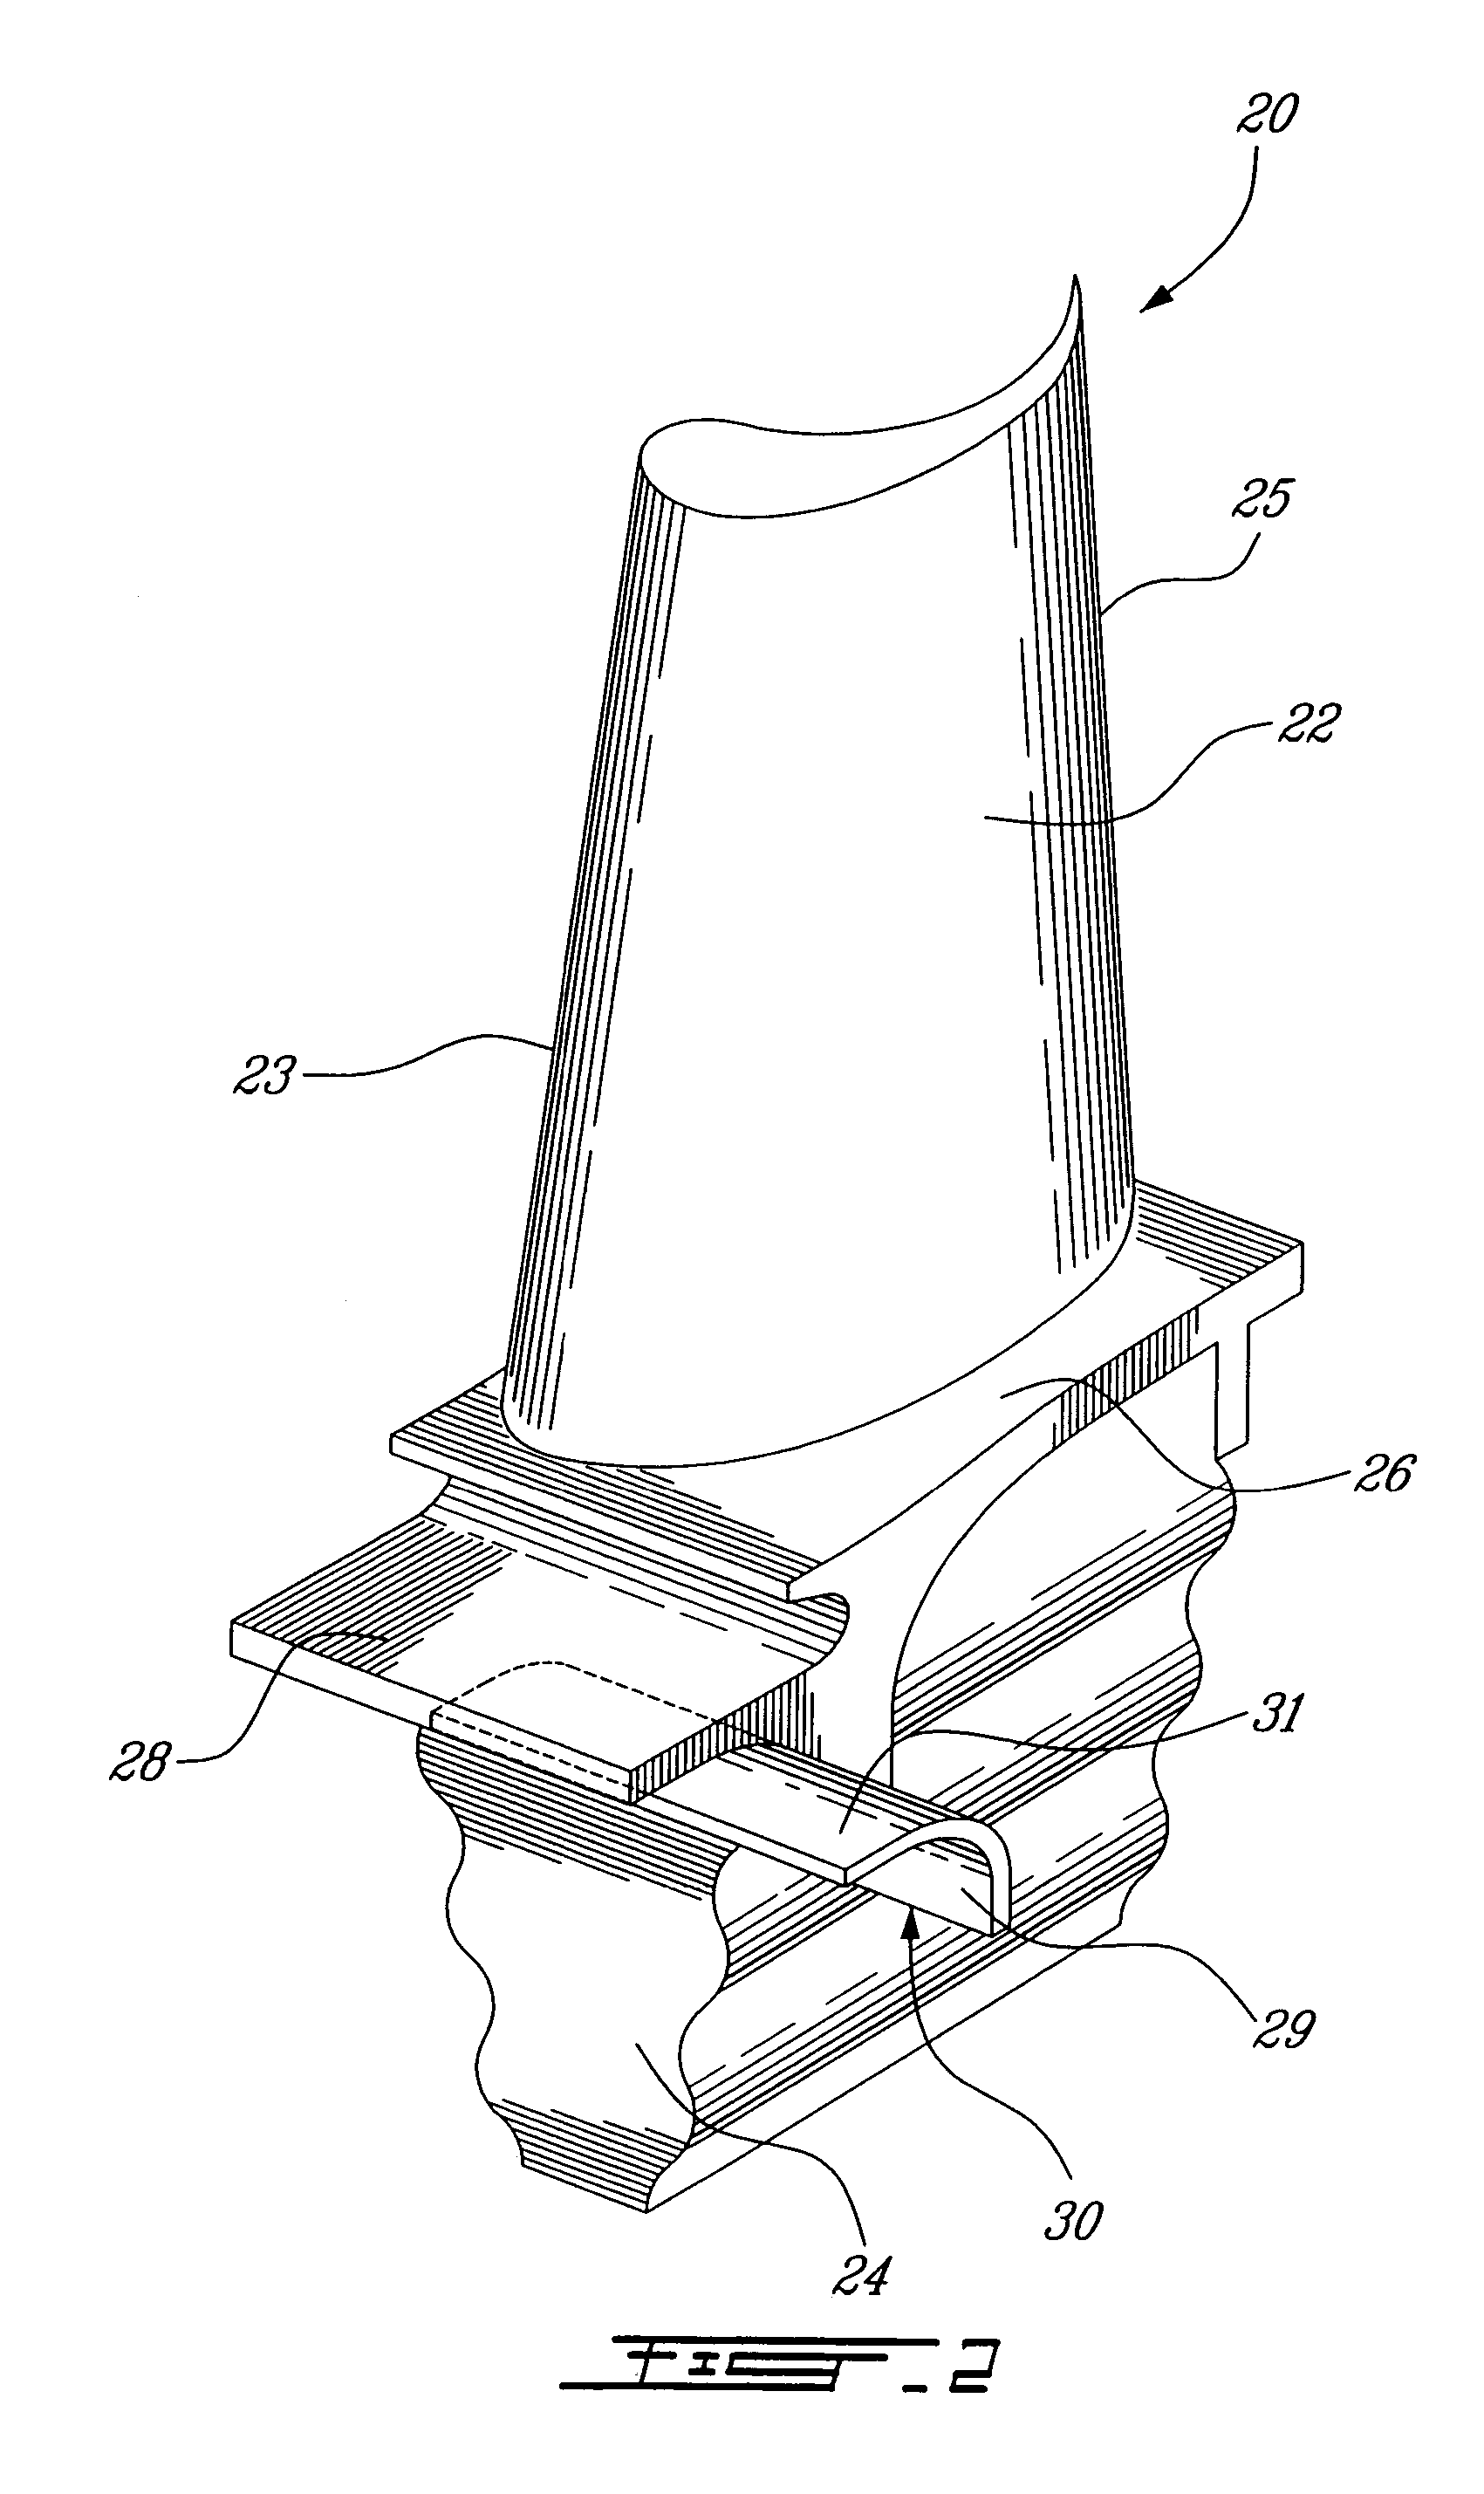 Patent US Blades for a gas turbine engine with integrated